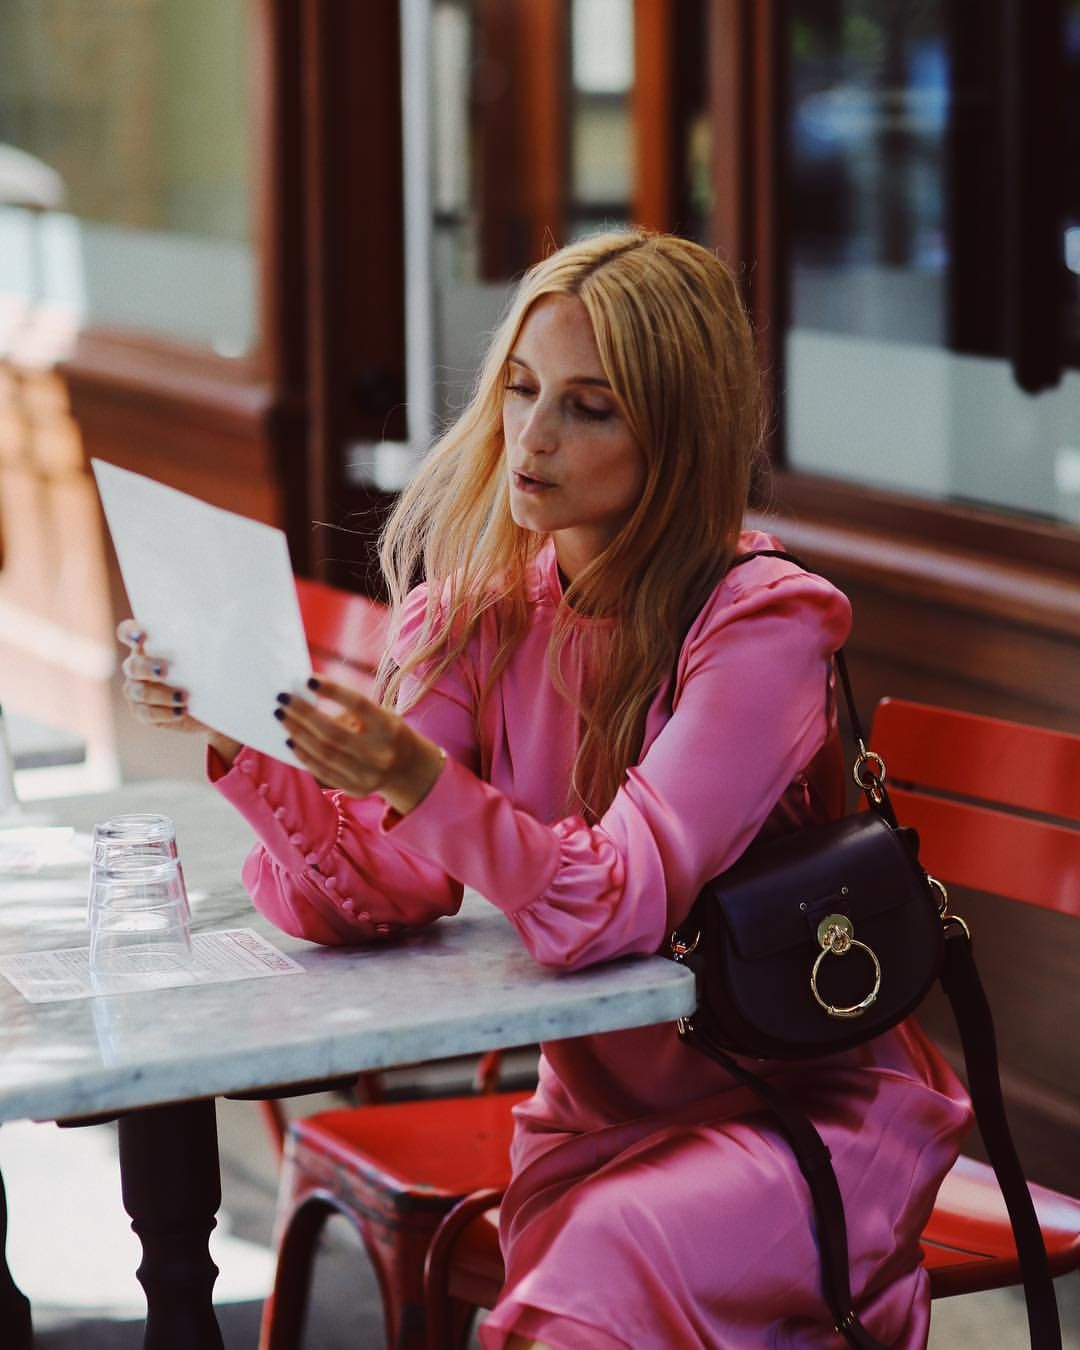 24ecbee18e9d Charlotte GroeneveldさんはInstagramを利用しています 「One pizza Margherita please 🍕 The  new  chloe Tess bag and me out for lunch  fashionweekdiet Ph  moeez ...